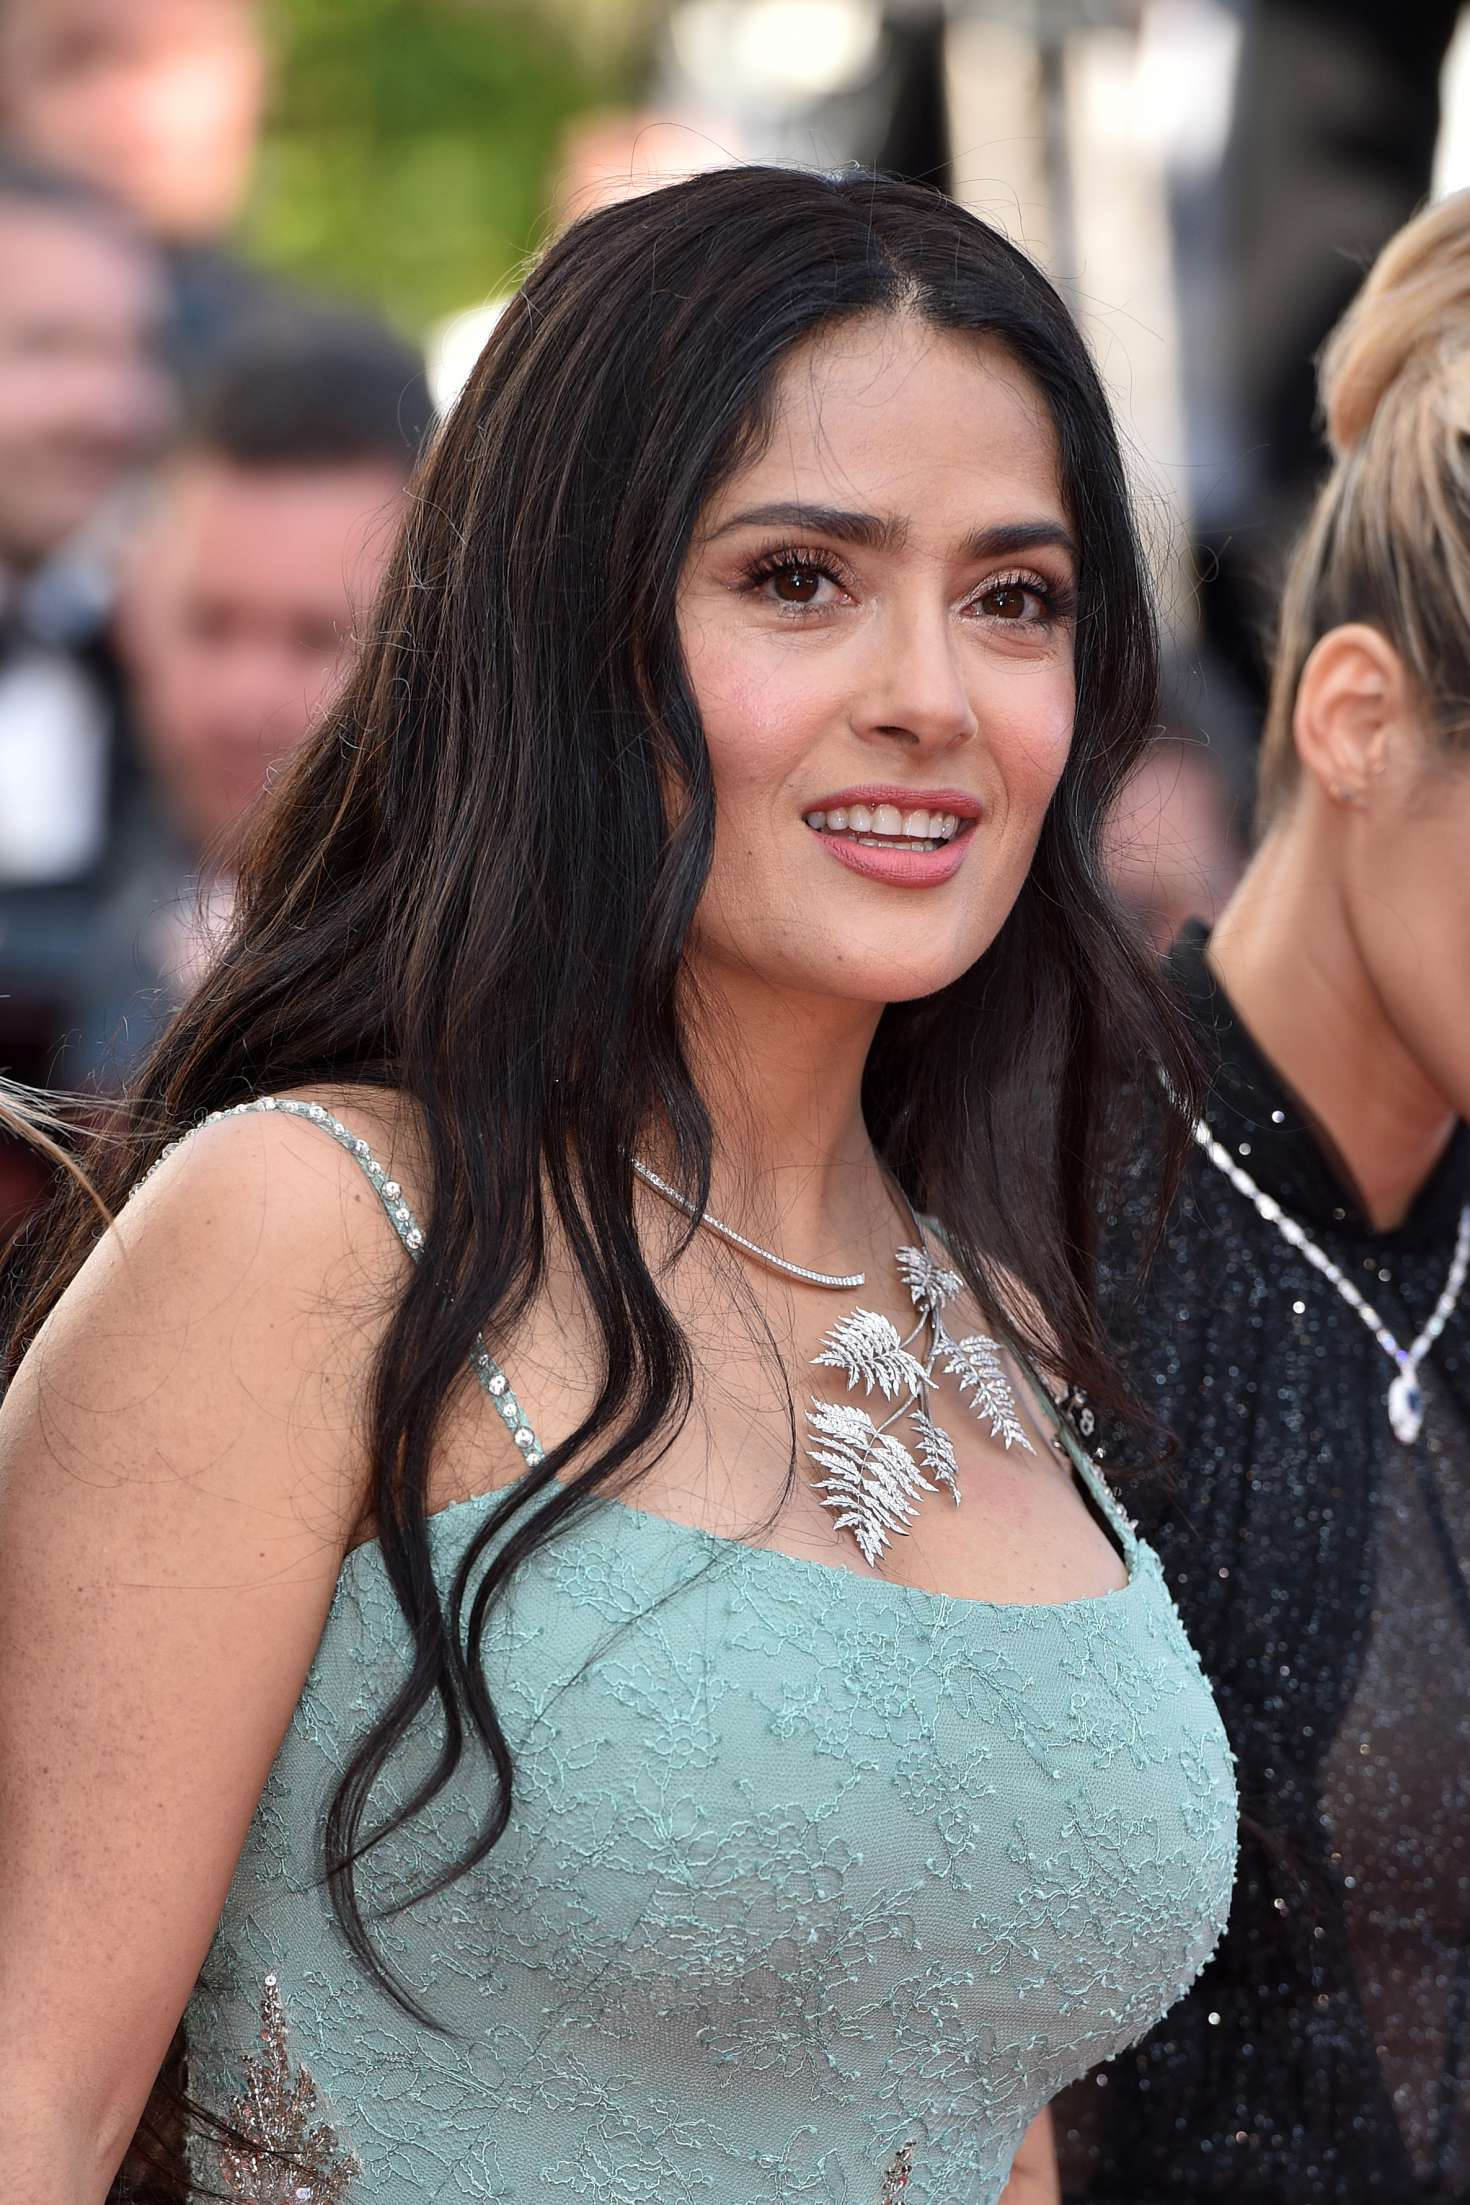 http://www.gotceleb.com/wp-content/uploads/photos/salma-hayek/girls-of-the-sun-premiere-at-2018-cannes-film-festival/Salma-Hayek:-Girls-Of-The-Sun-Premiere-at-2018-Cannes-Film-Festival--04.jpg